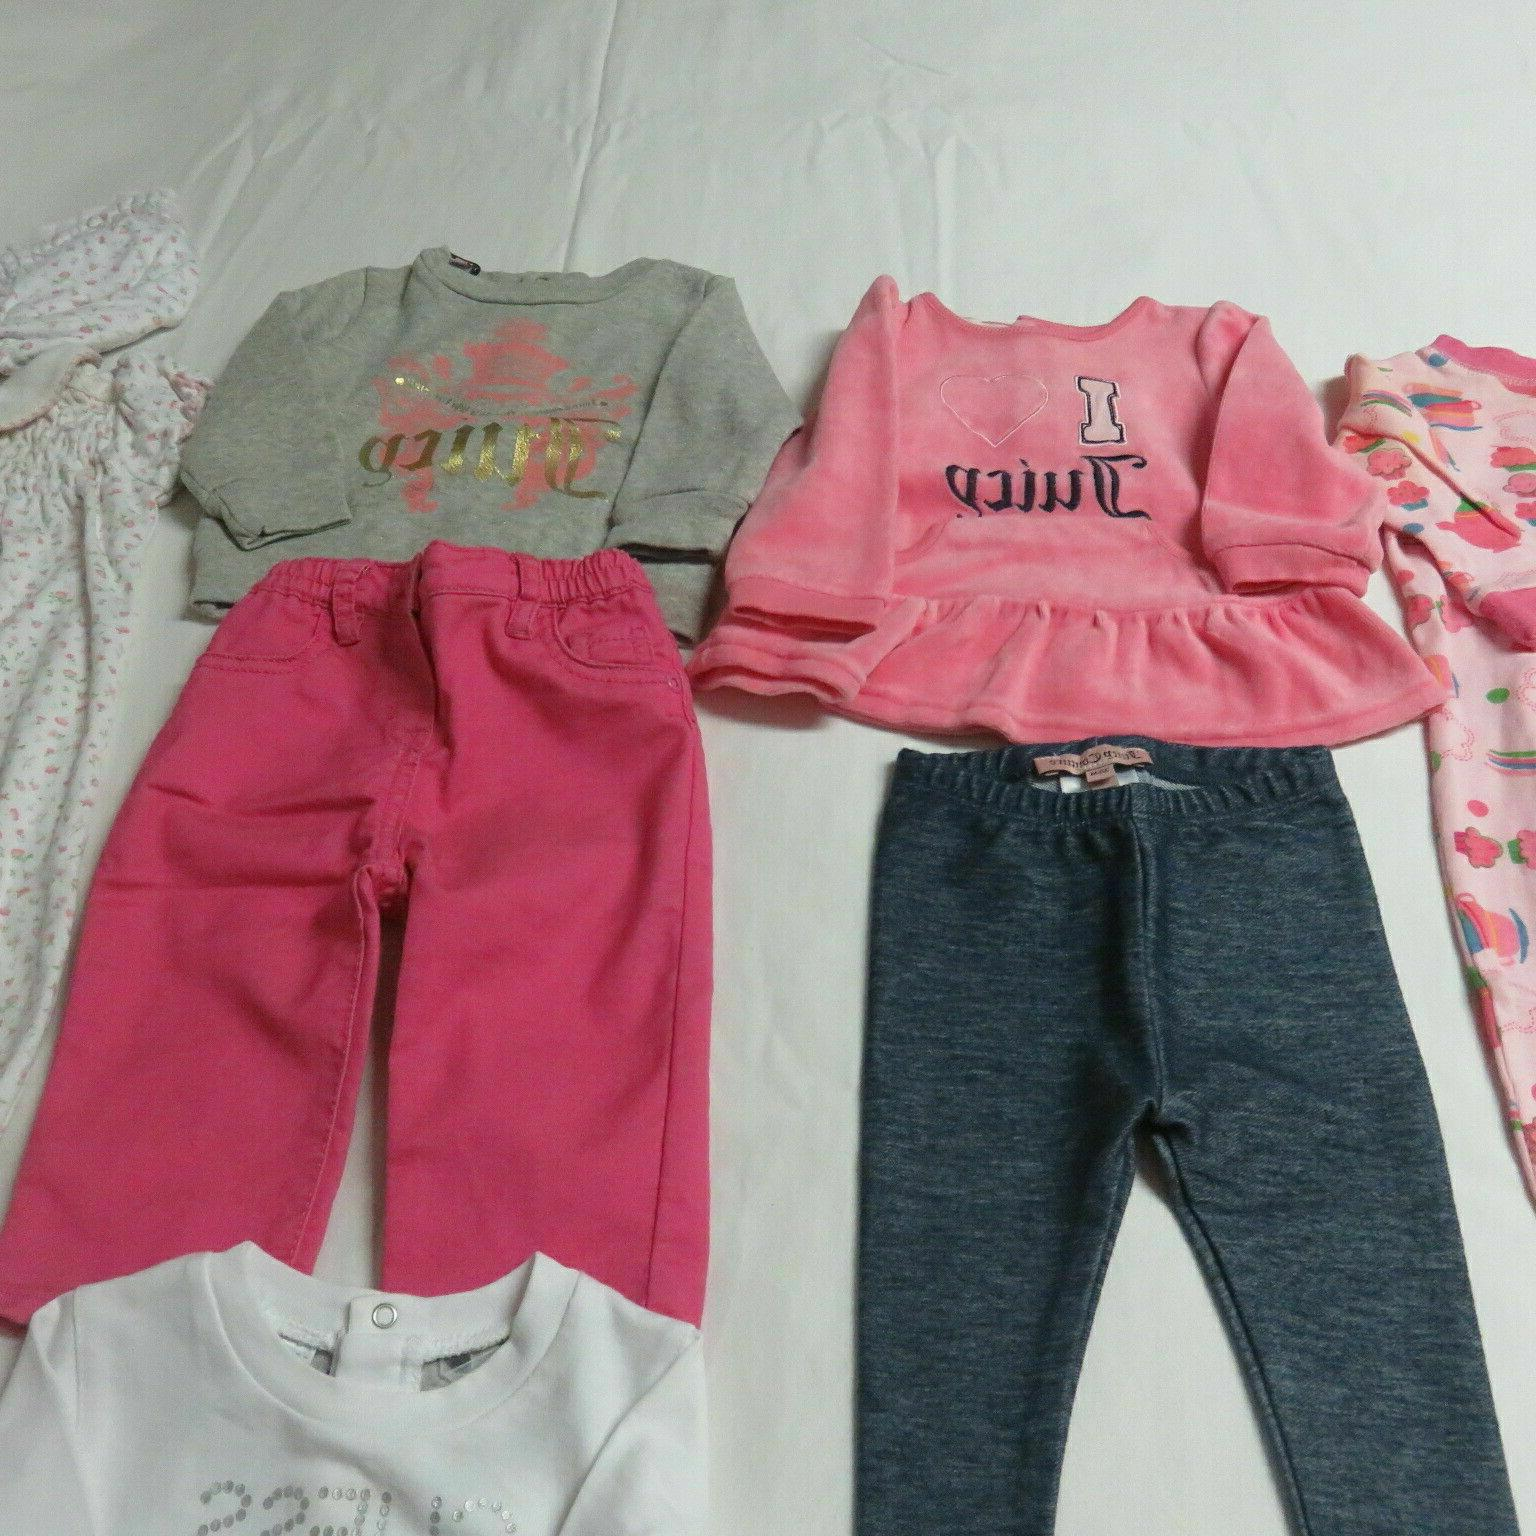 13 - Juicy Couture, Grouping 3-6